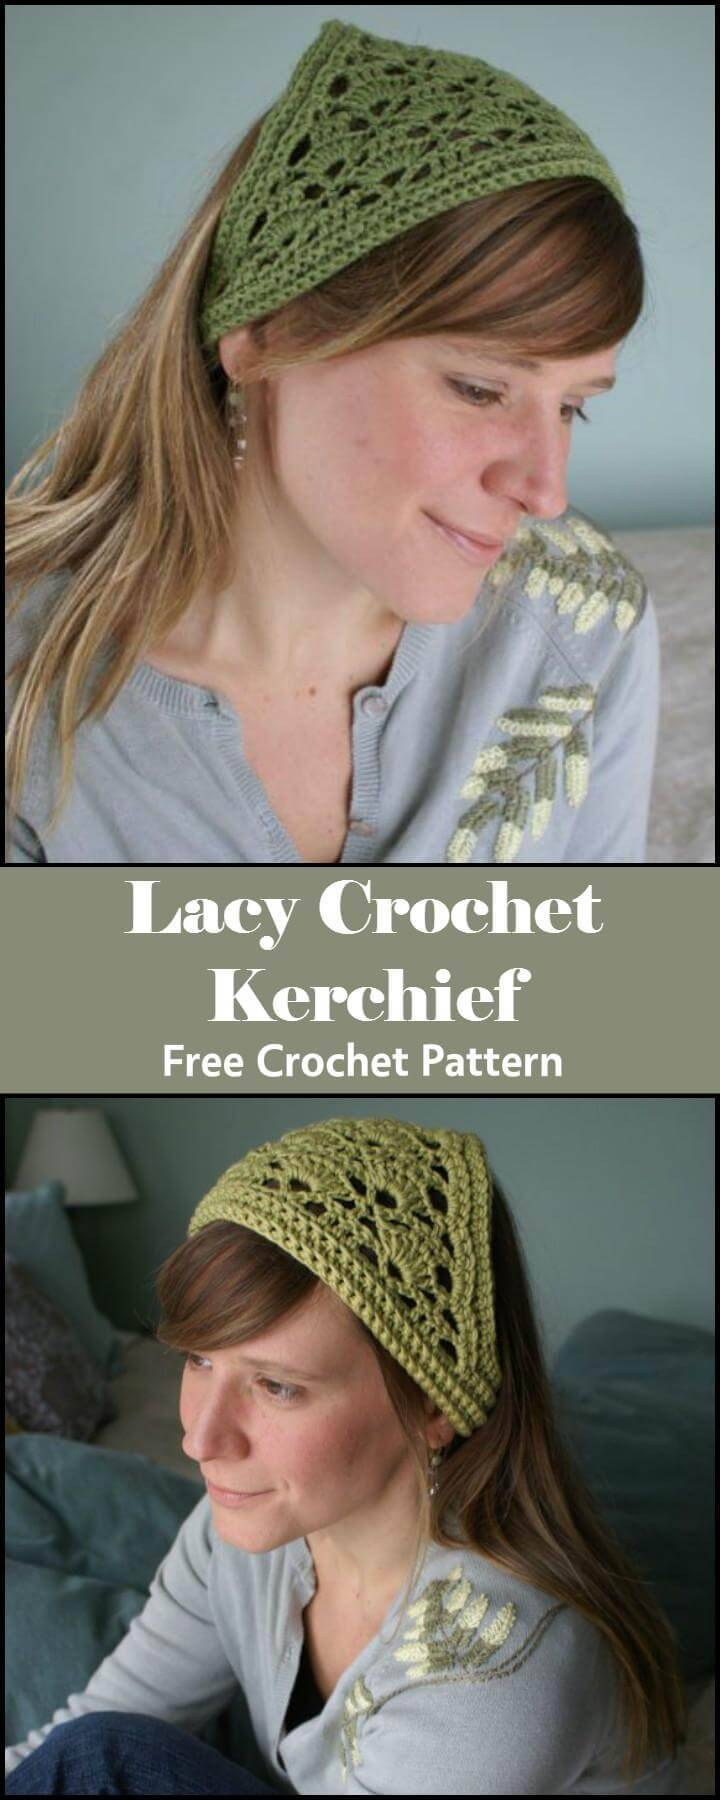 Lacy Crochet Kerchief Free Crochet Pattern